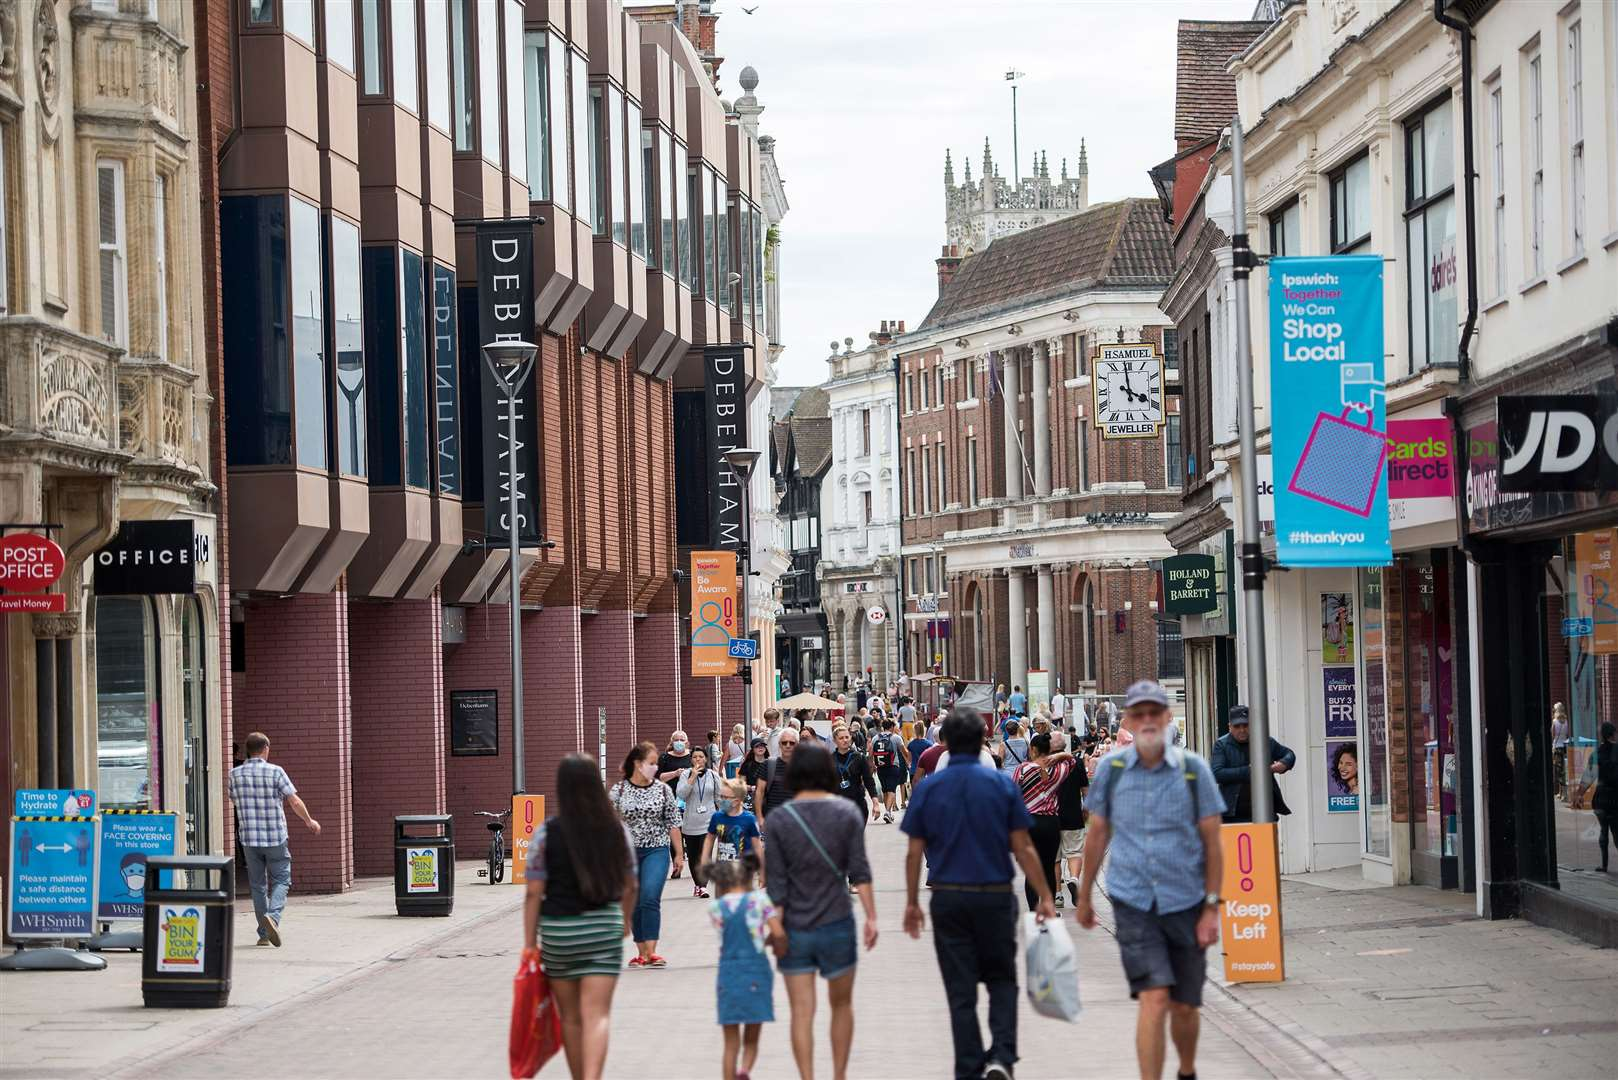 Ipswich's Westgate Street pictured in July 2020. Picture by Mark Westley